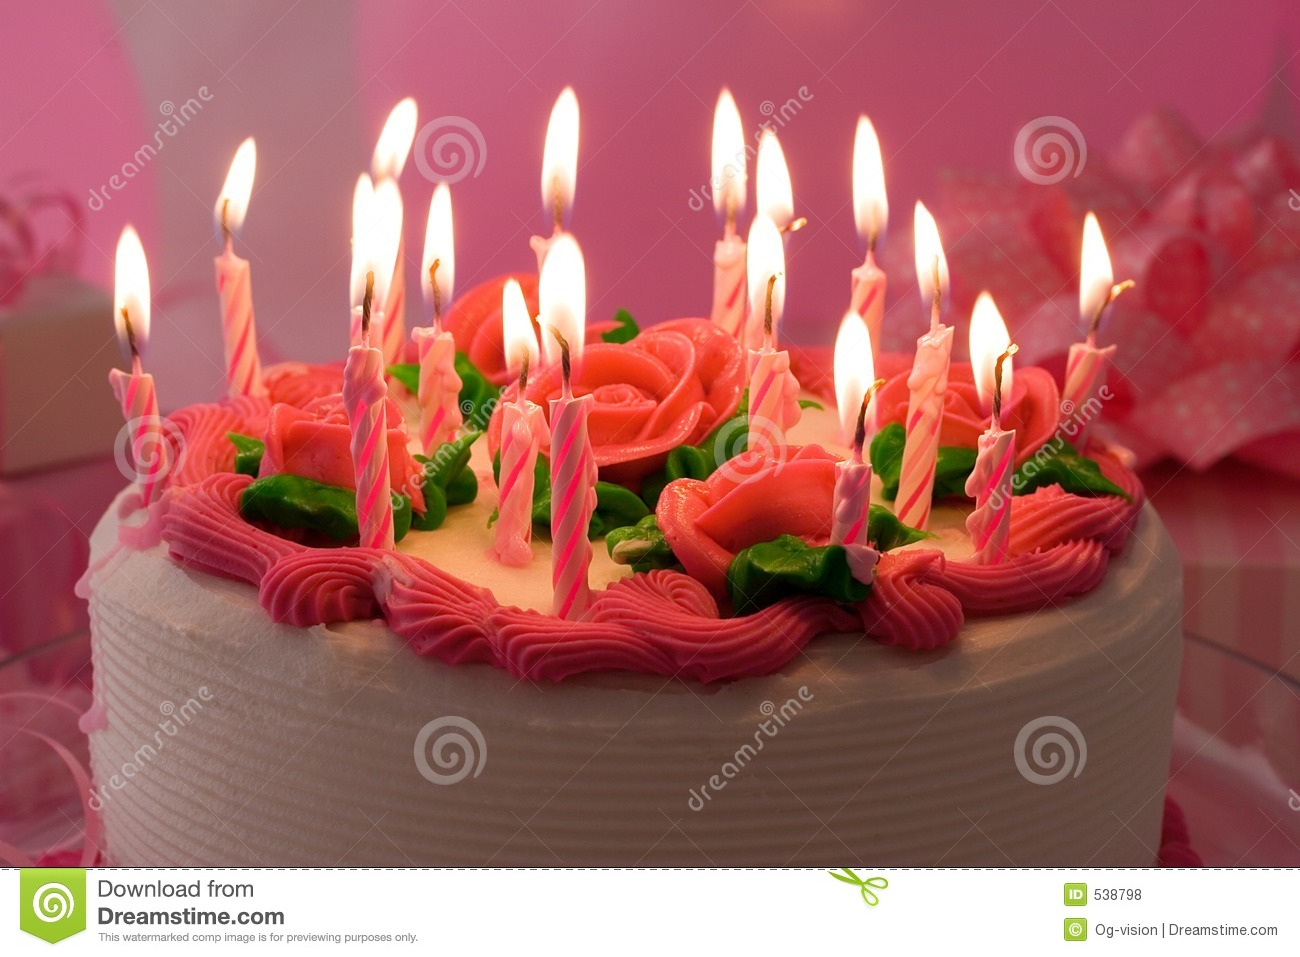 Birthday Cake Stock Images Download 135615 Photos